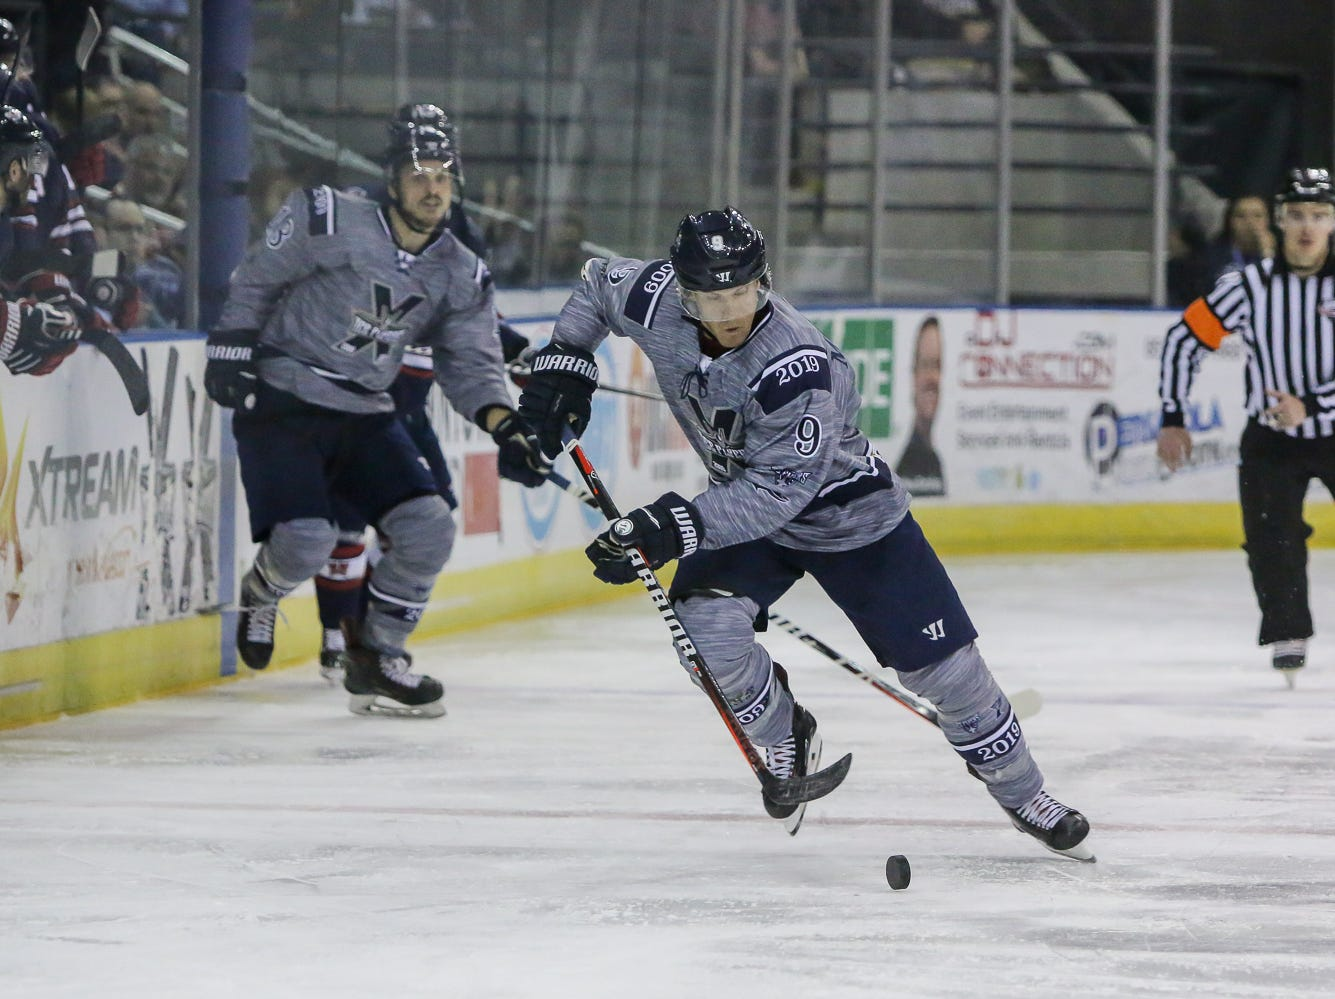 Pensacola's Ryan Marcuz (9) moves the puck up the ice against Macon during the last home game of the regular season at the Pensacola Bay Center on Saturday, March 23, 2019. With over 4,300 people in attendance for Pensacola's 3-1 victory, the Ice Flyers mark six straight years of over 100,000 people at their home games each season. The team has won their last five games in a row and will finish out their last five games on the road before entering the playoffs in a couple of weeks.